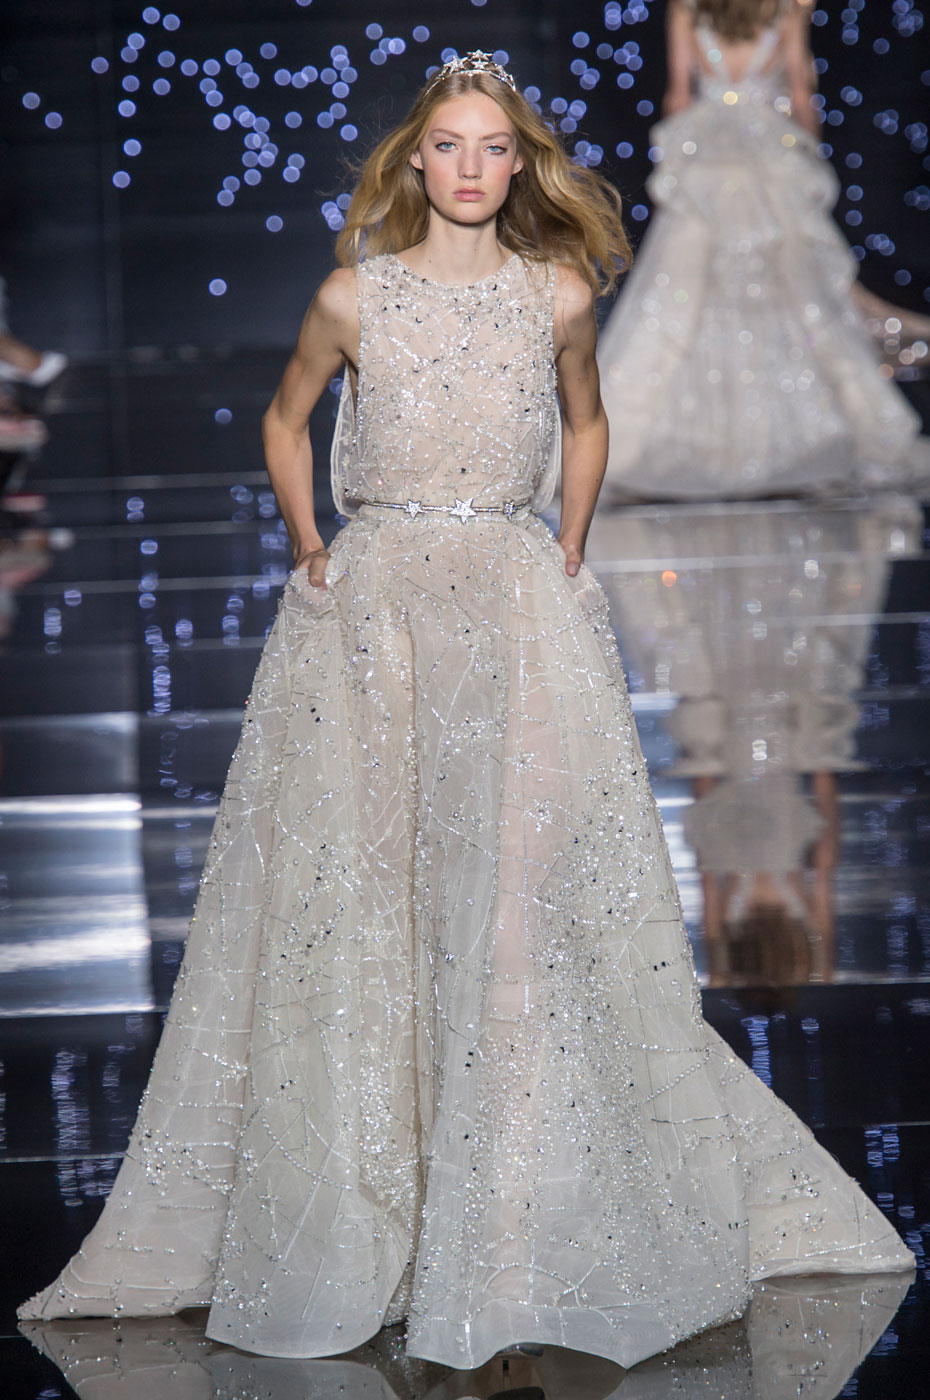 The Best Haute Couture Wedding Dresses for Fall 2015 - theFashionSpot